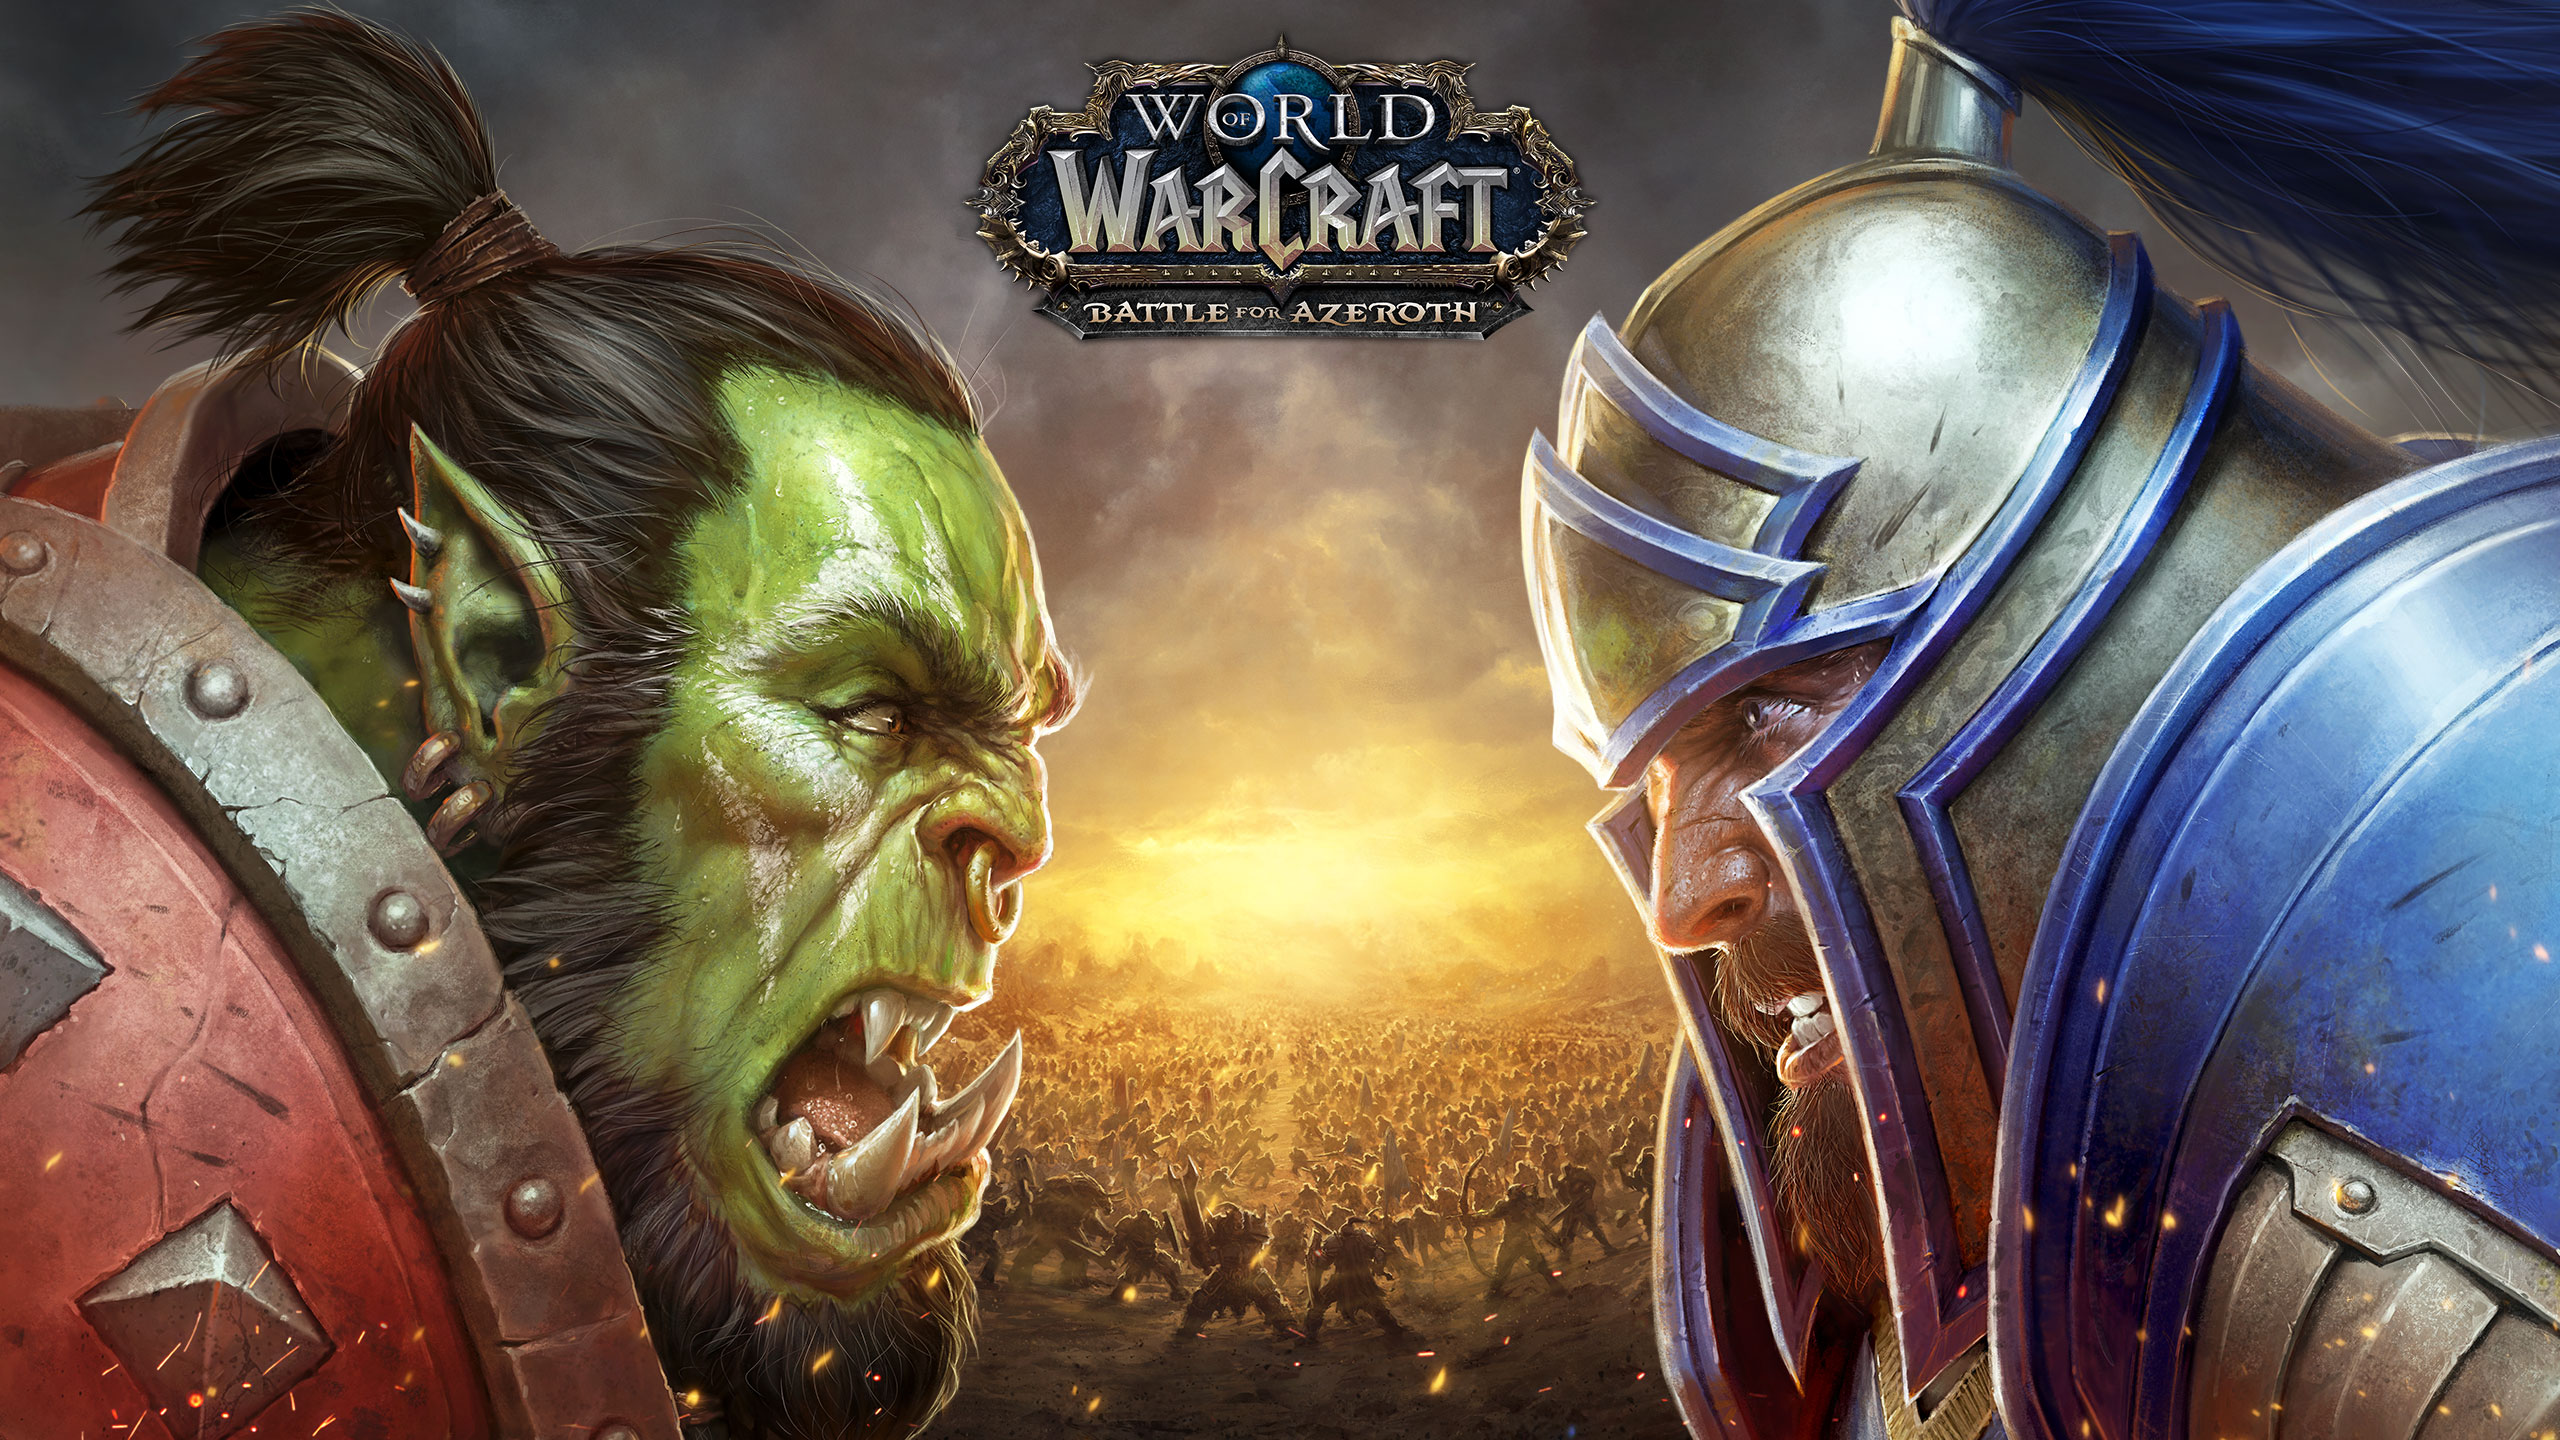 World of Warcraft: Battle for Azeroth Beta Key Giveaway